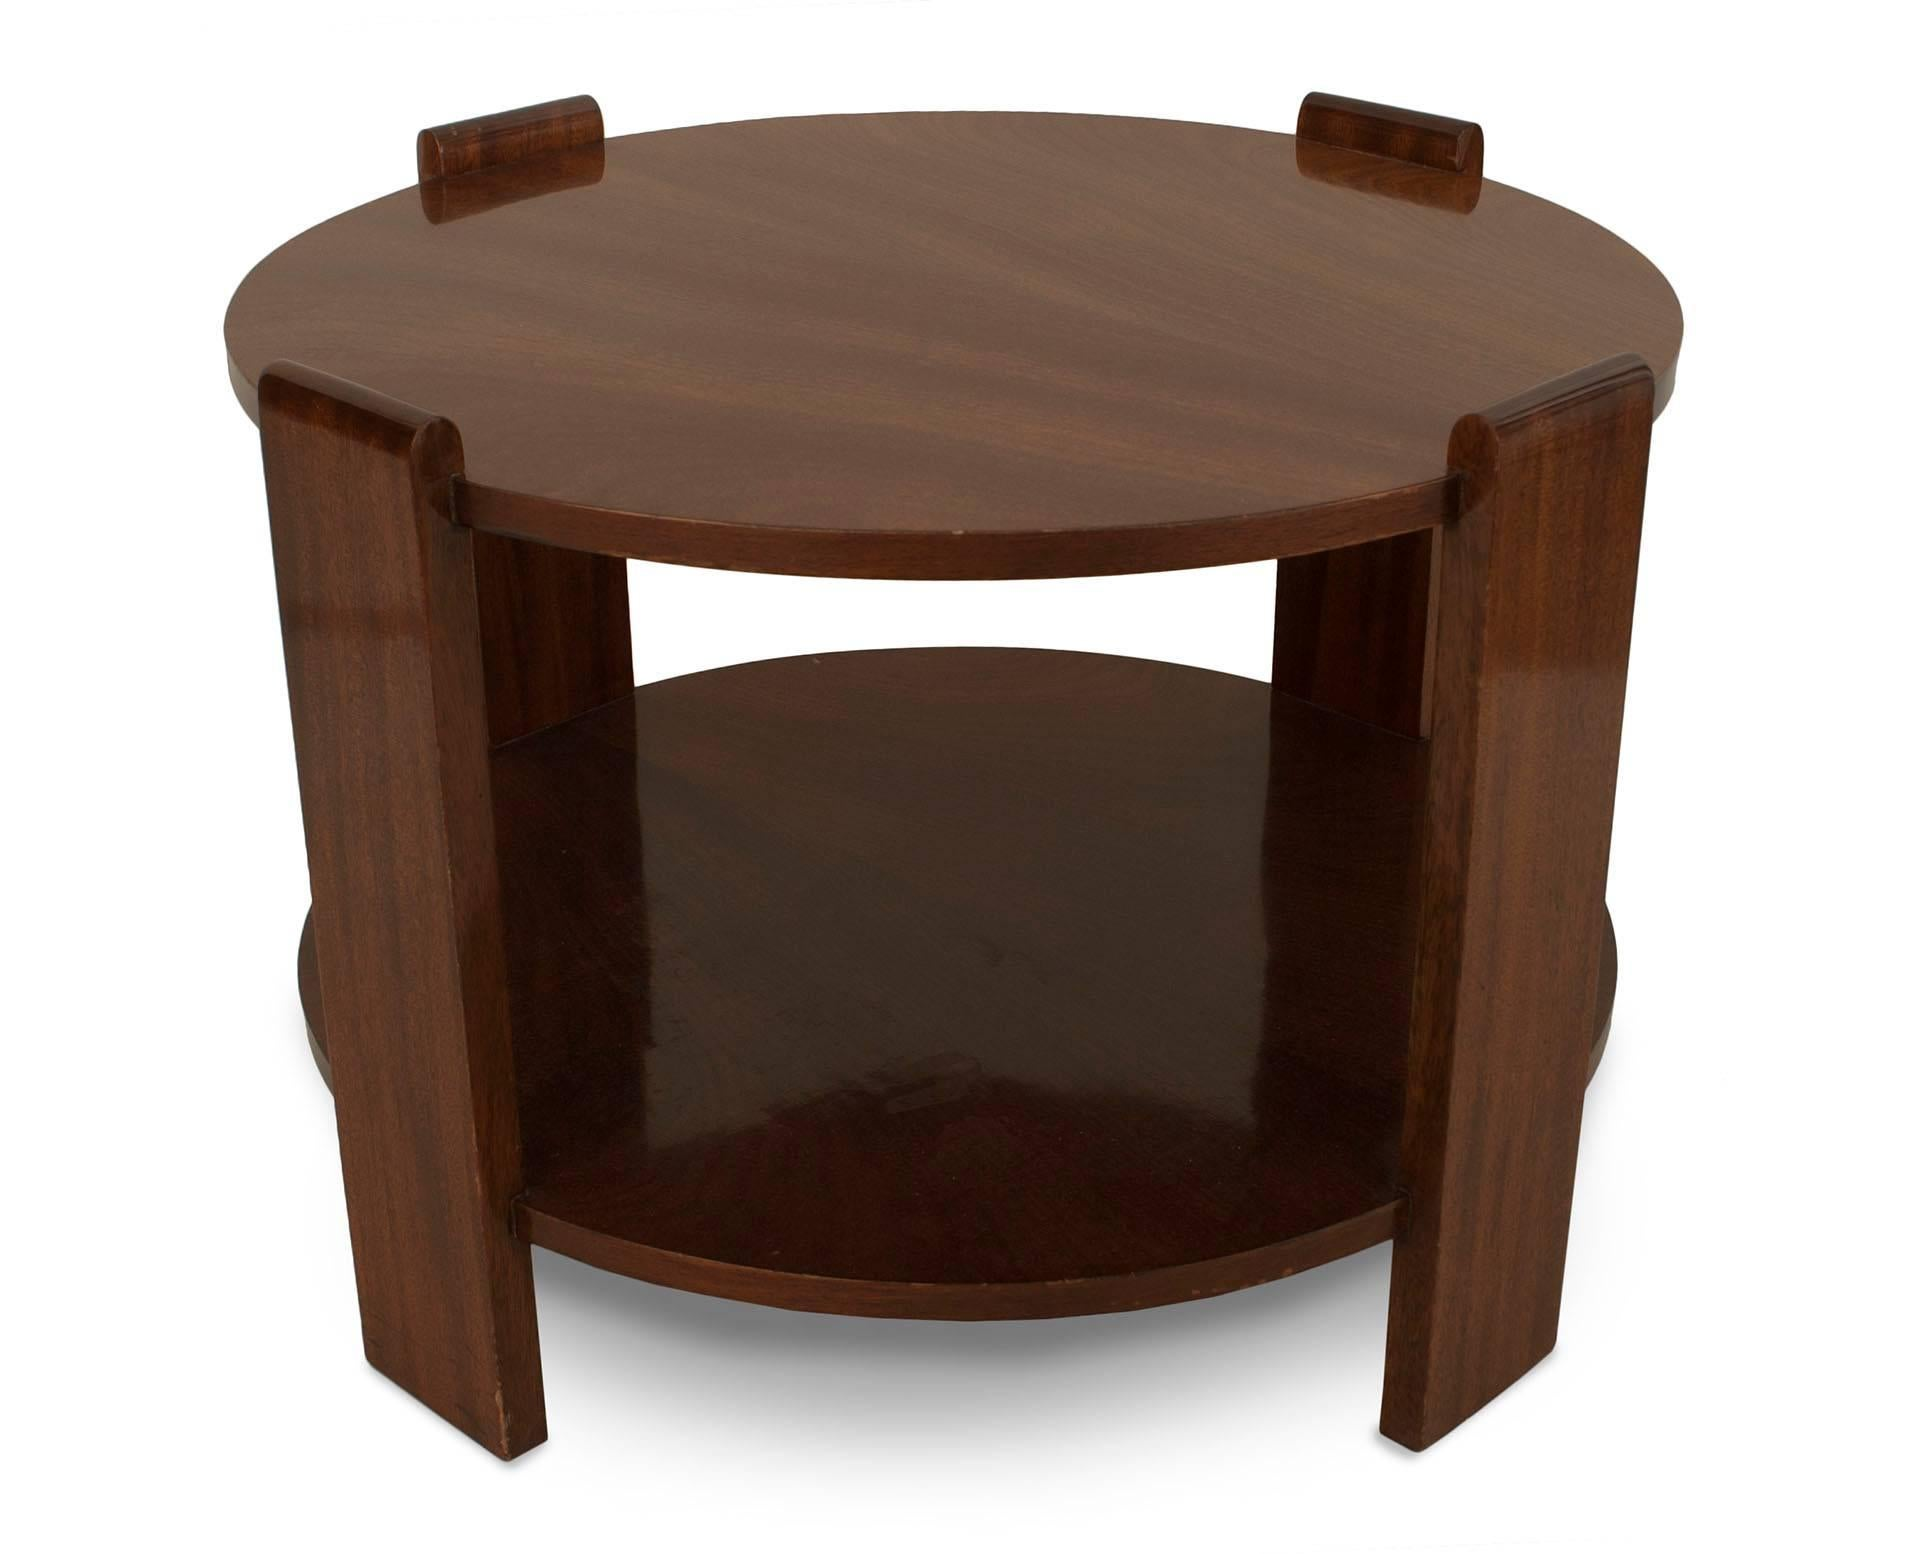 French Art Deco Mahogany Round Coffee Table With A Shelf And Supported By  Four Round Top